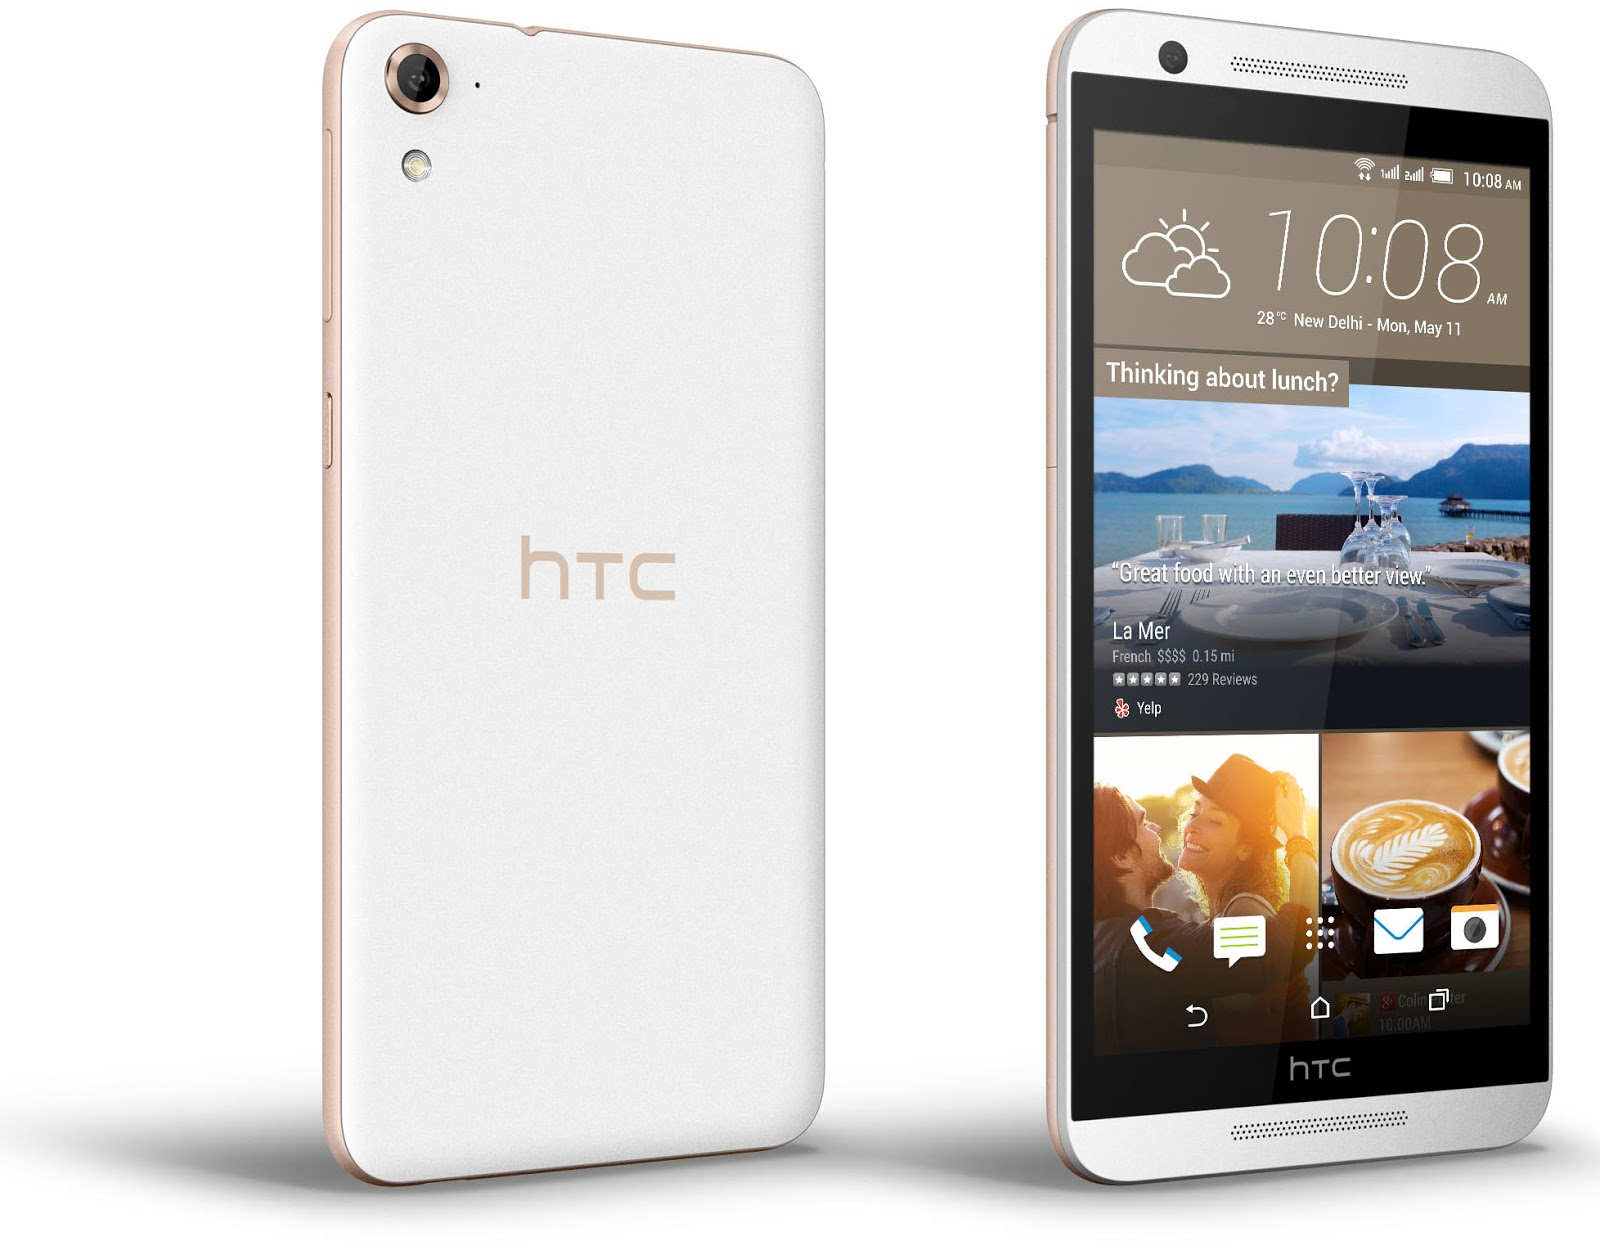 HTC One E9s user manual,HTC One E9s user guide manual,HTC One E9s user manual pdf‎,HTC One E9s user manual guide,HTC One E9s owners manuals online,HTC One E9s user guides, User Guide Manual,User Manual,User Manual Guide,User Manual PDF‎,